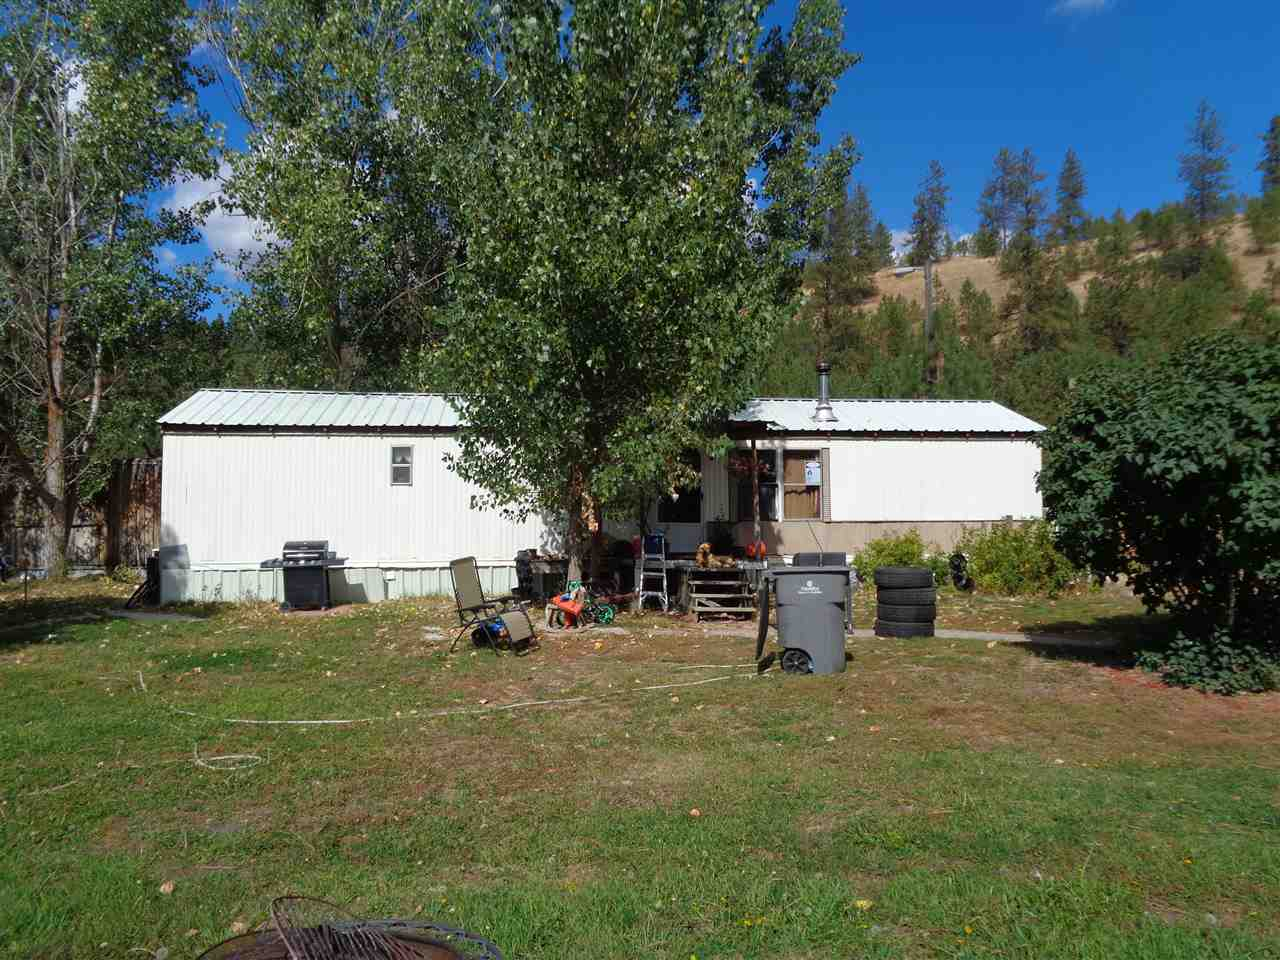 Mobile Homes for Sale at 7694 Jeanne Street Way Road 7694 Jeanne Street Way Road Ford, Washington 99013 United States